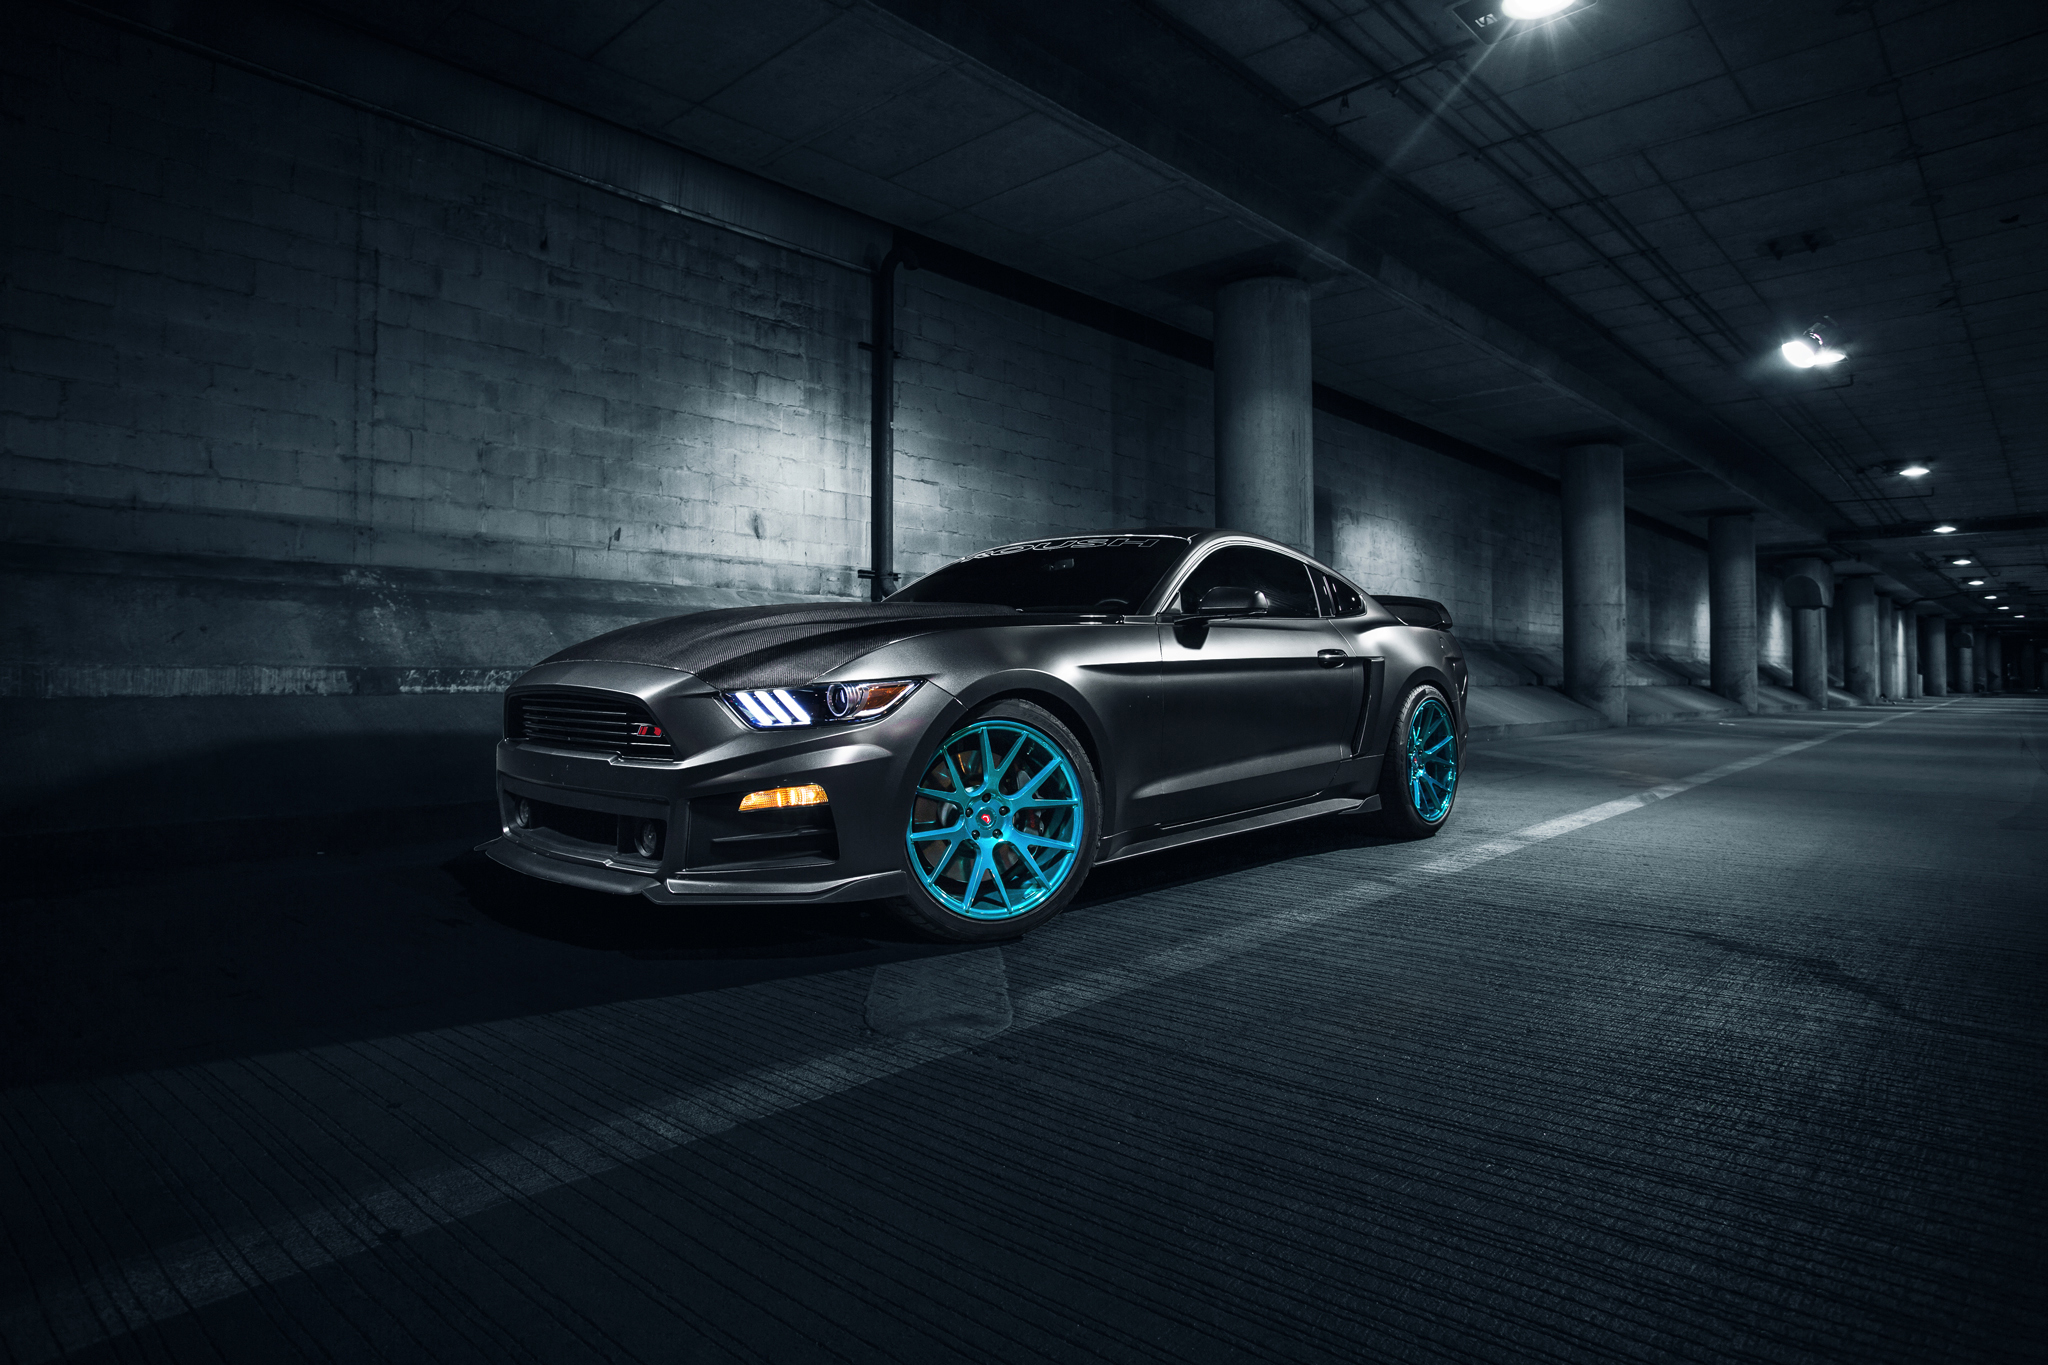 Ford Mustang Muscle Car HD